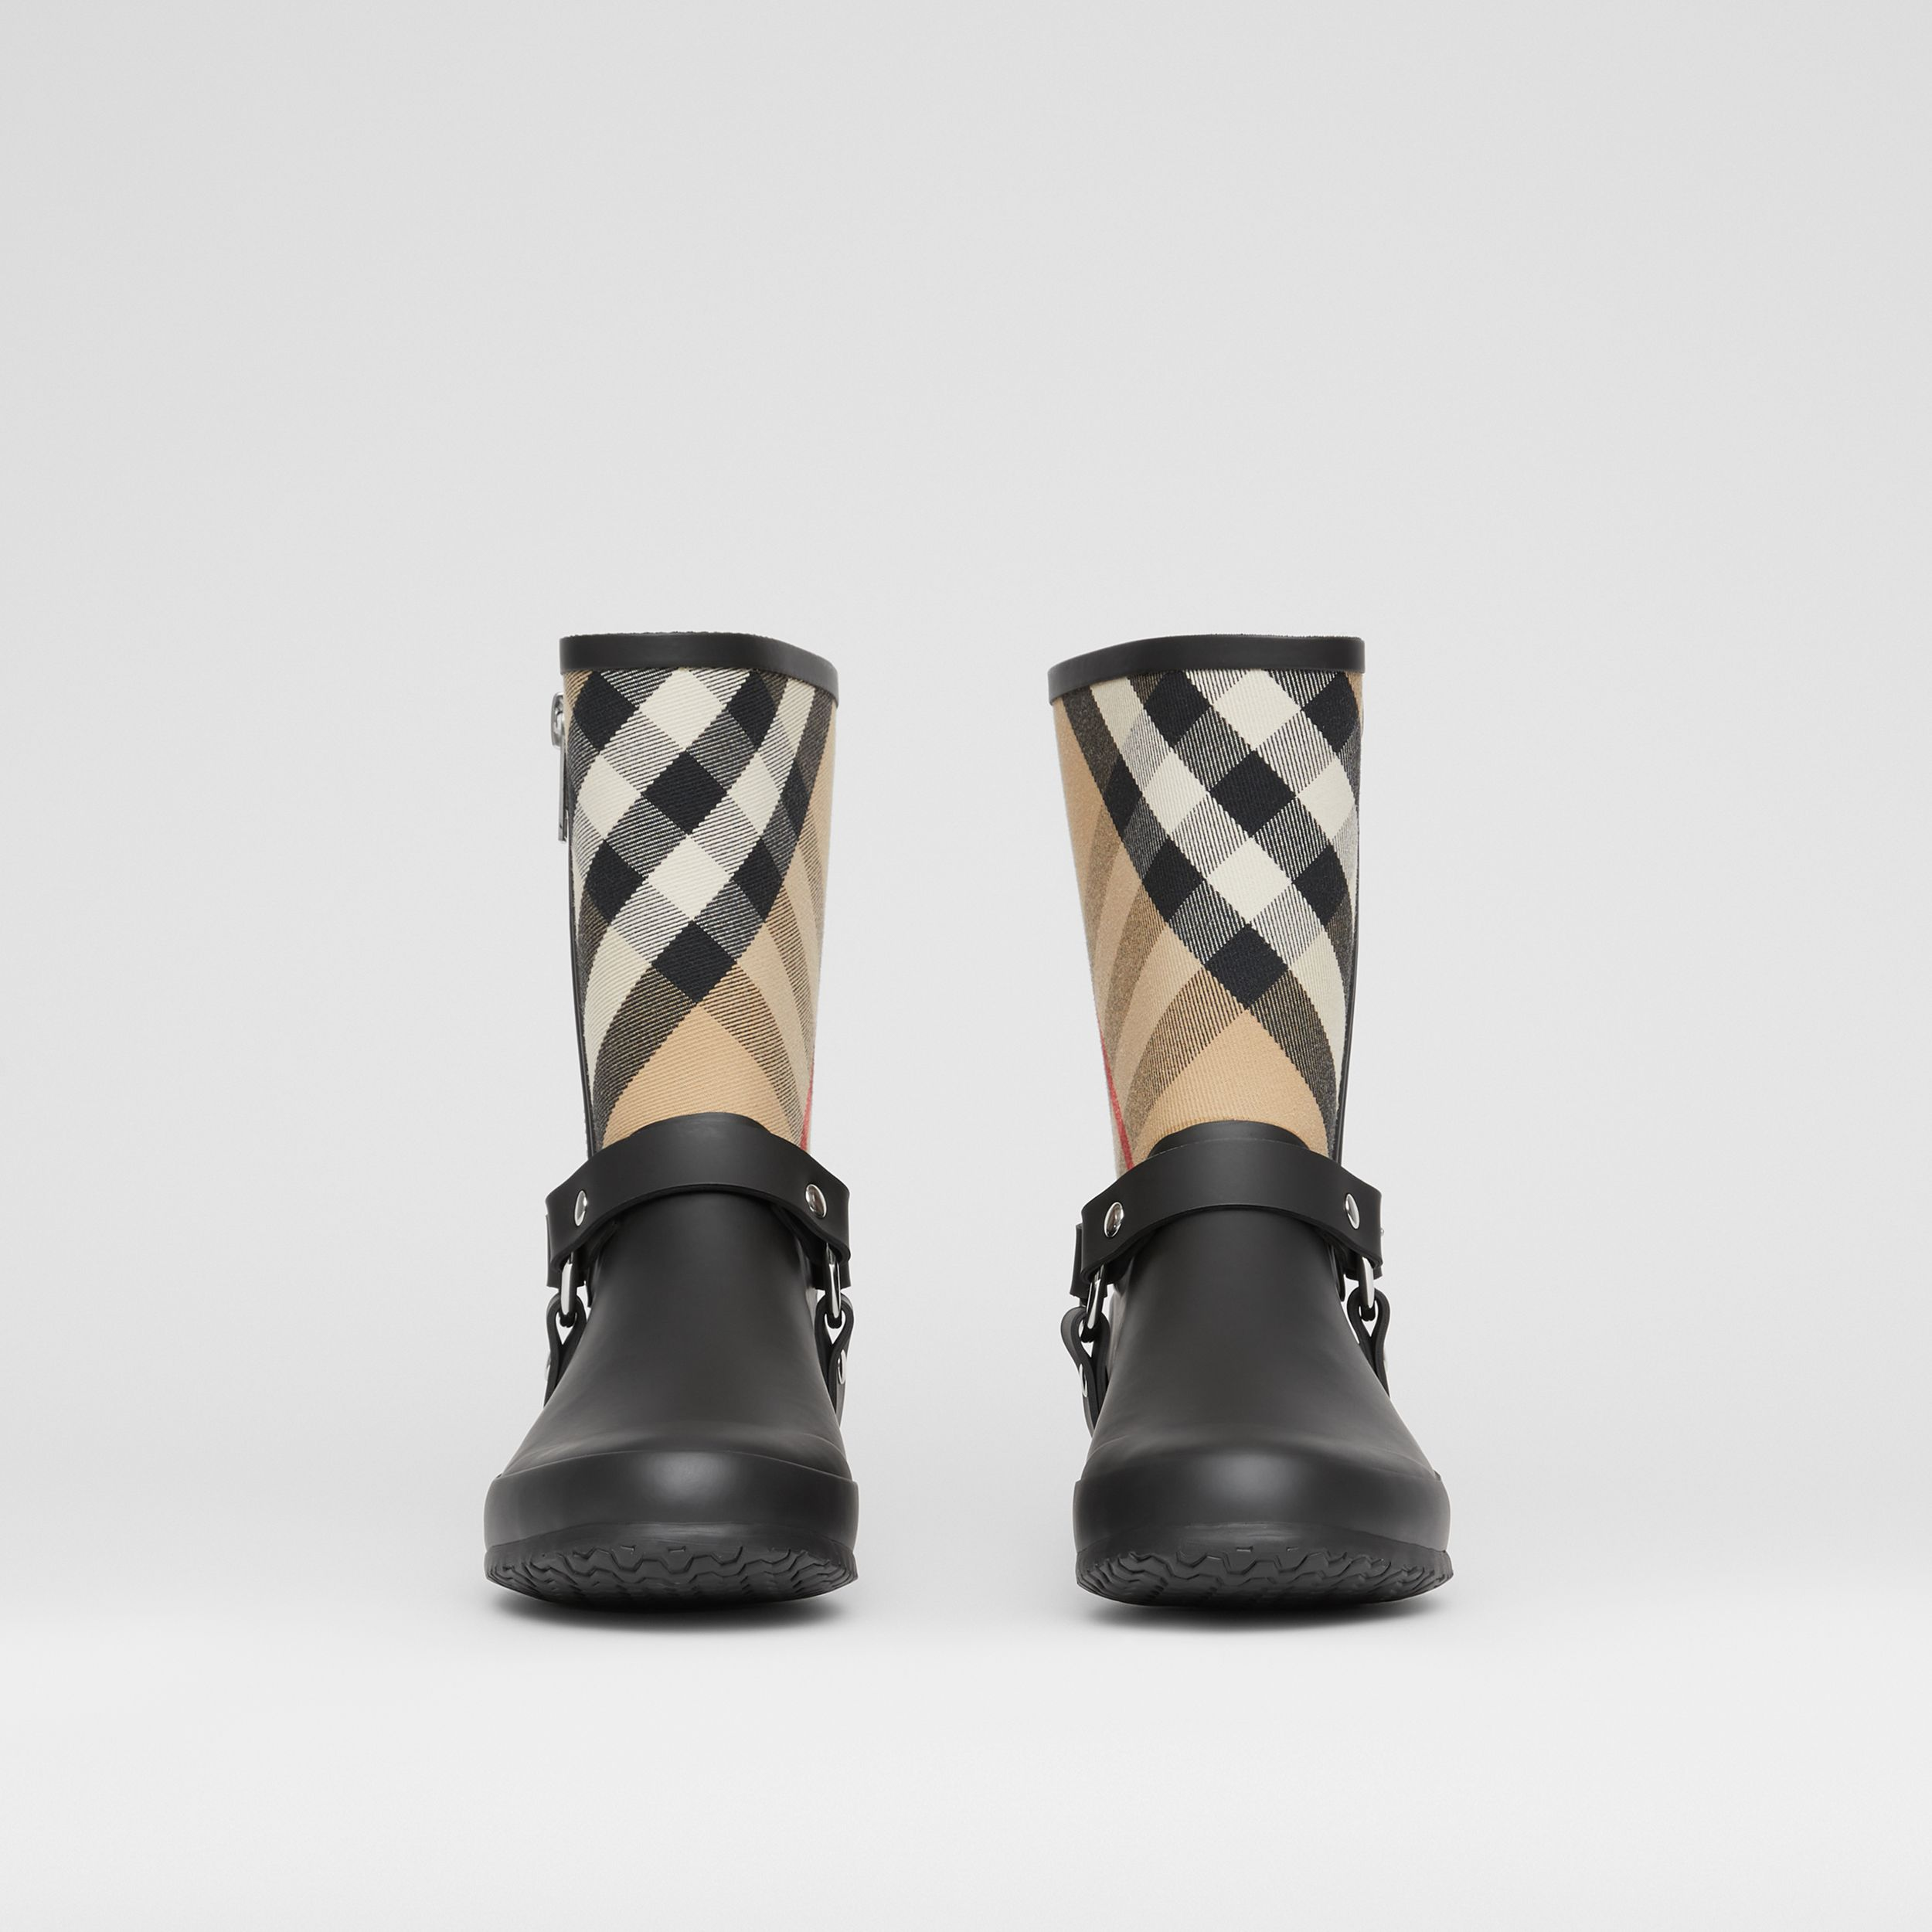 Strap Detail House Check Rubber Rain Boots in Black/archive Beige - Women | Burberry Australia - 4